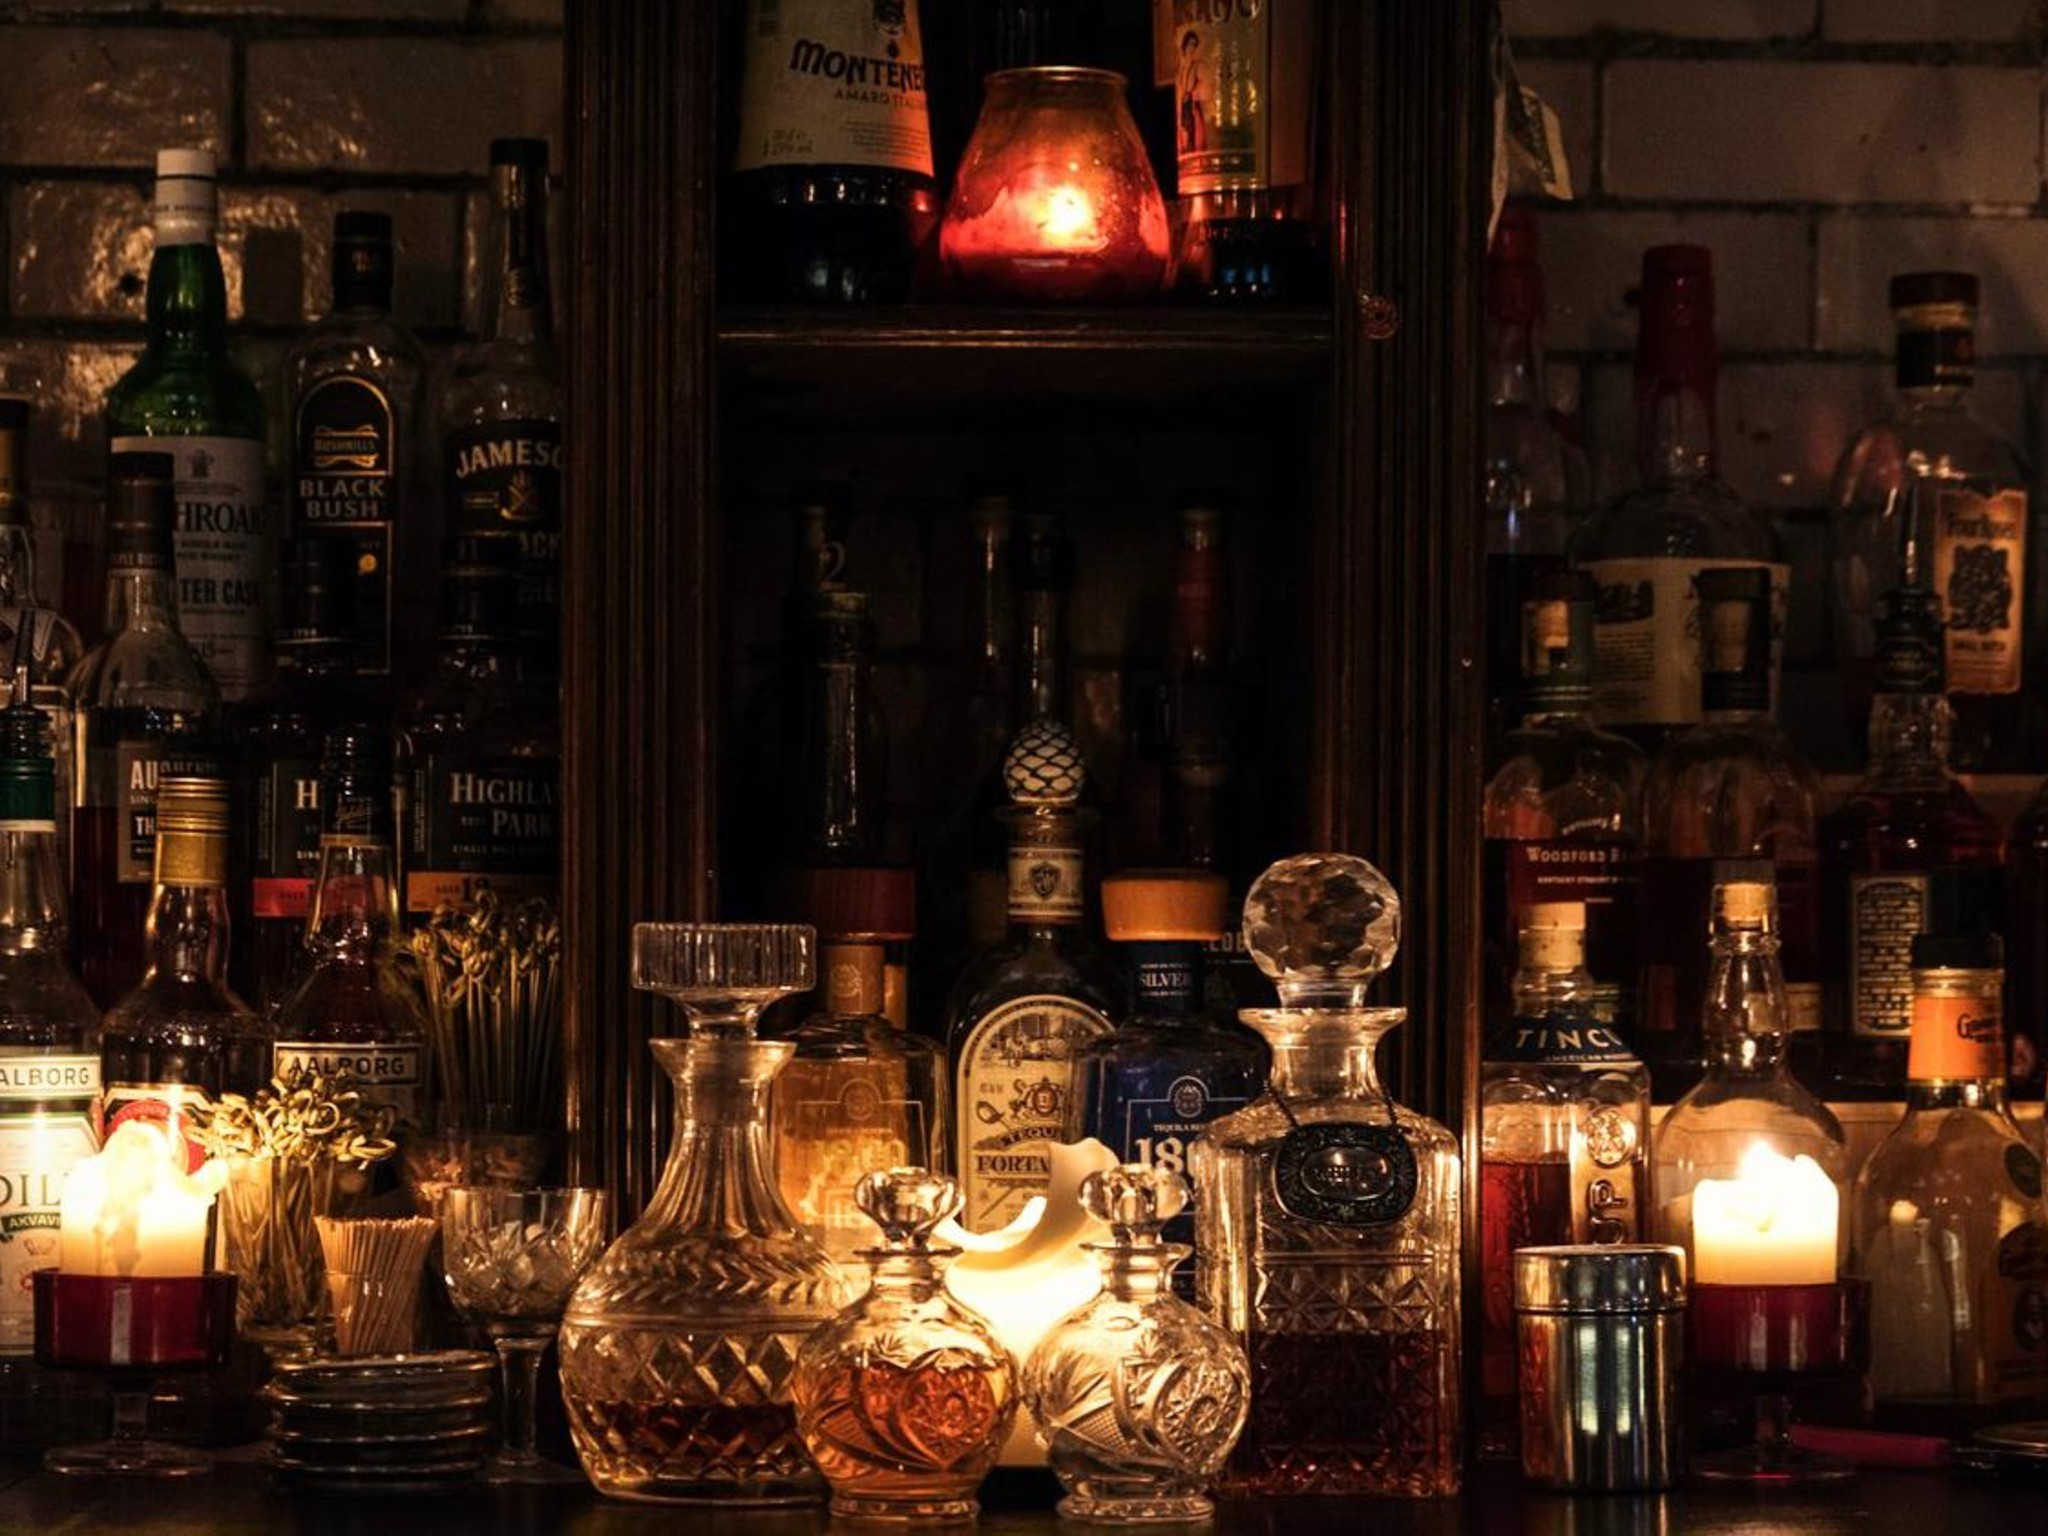 A dimly lit bar in candlelight with a selection of bottles and glasses